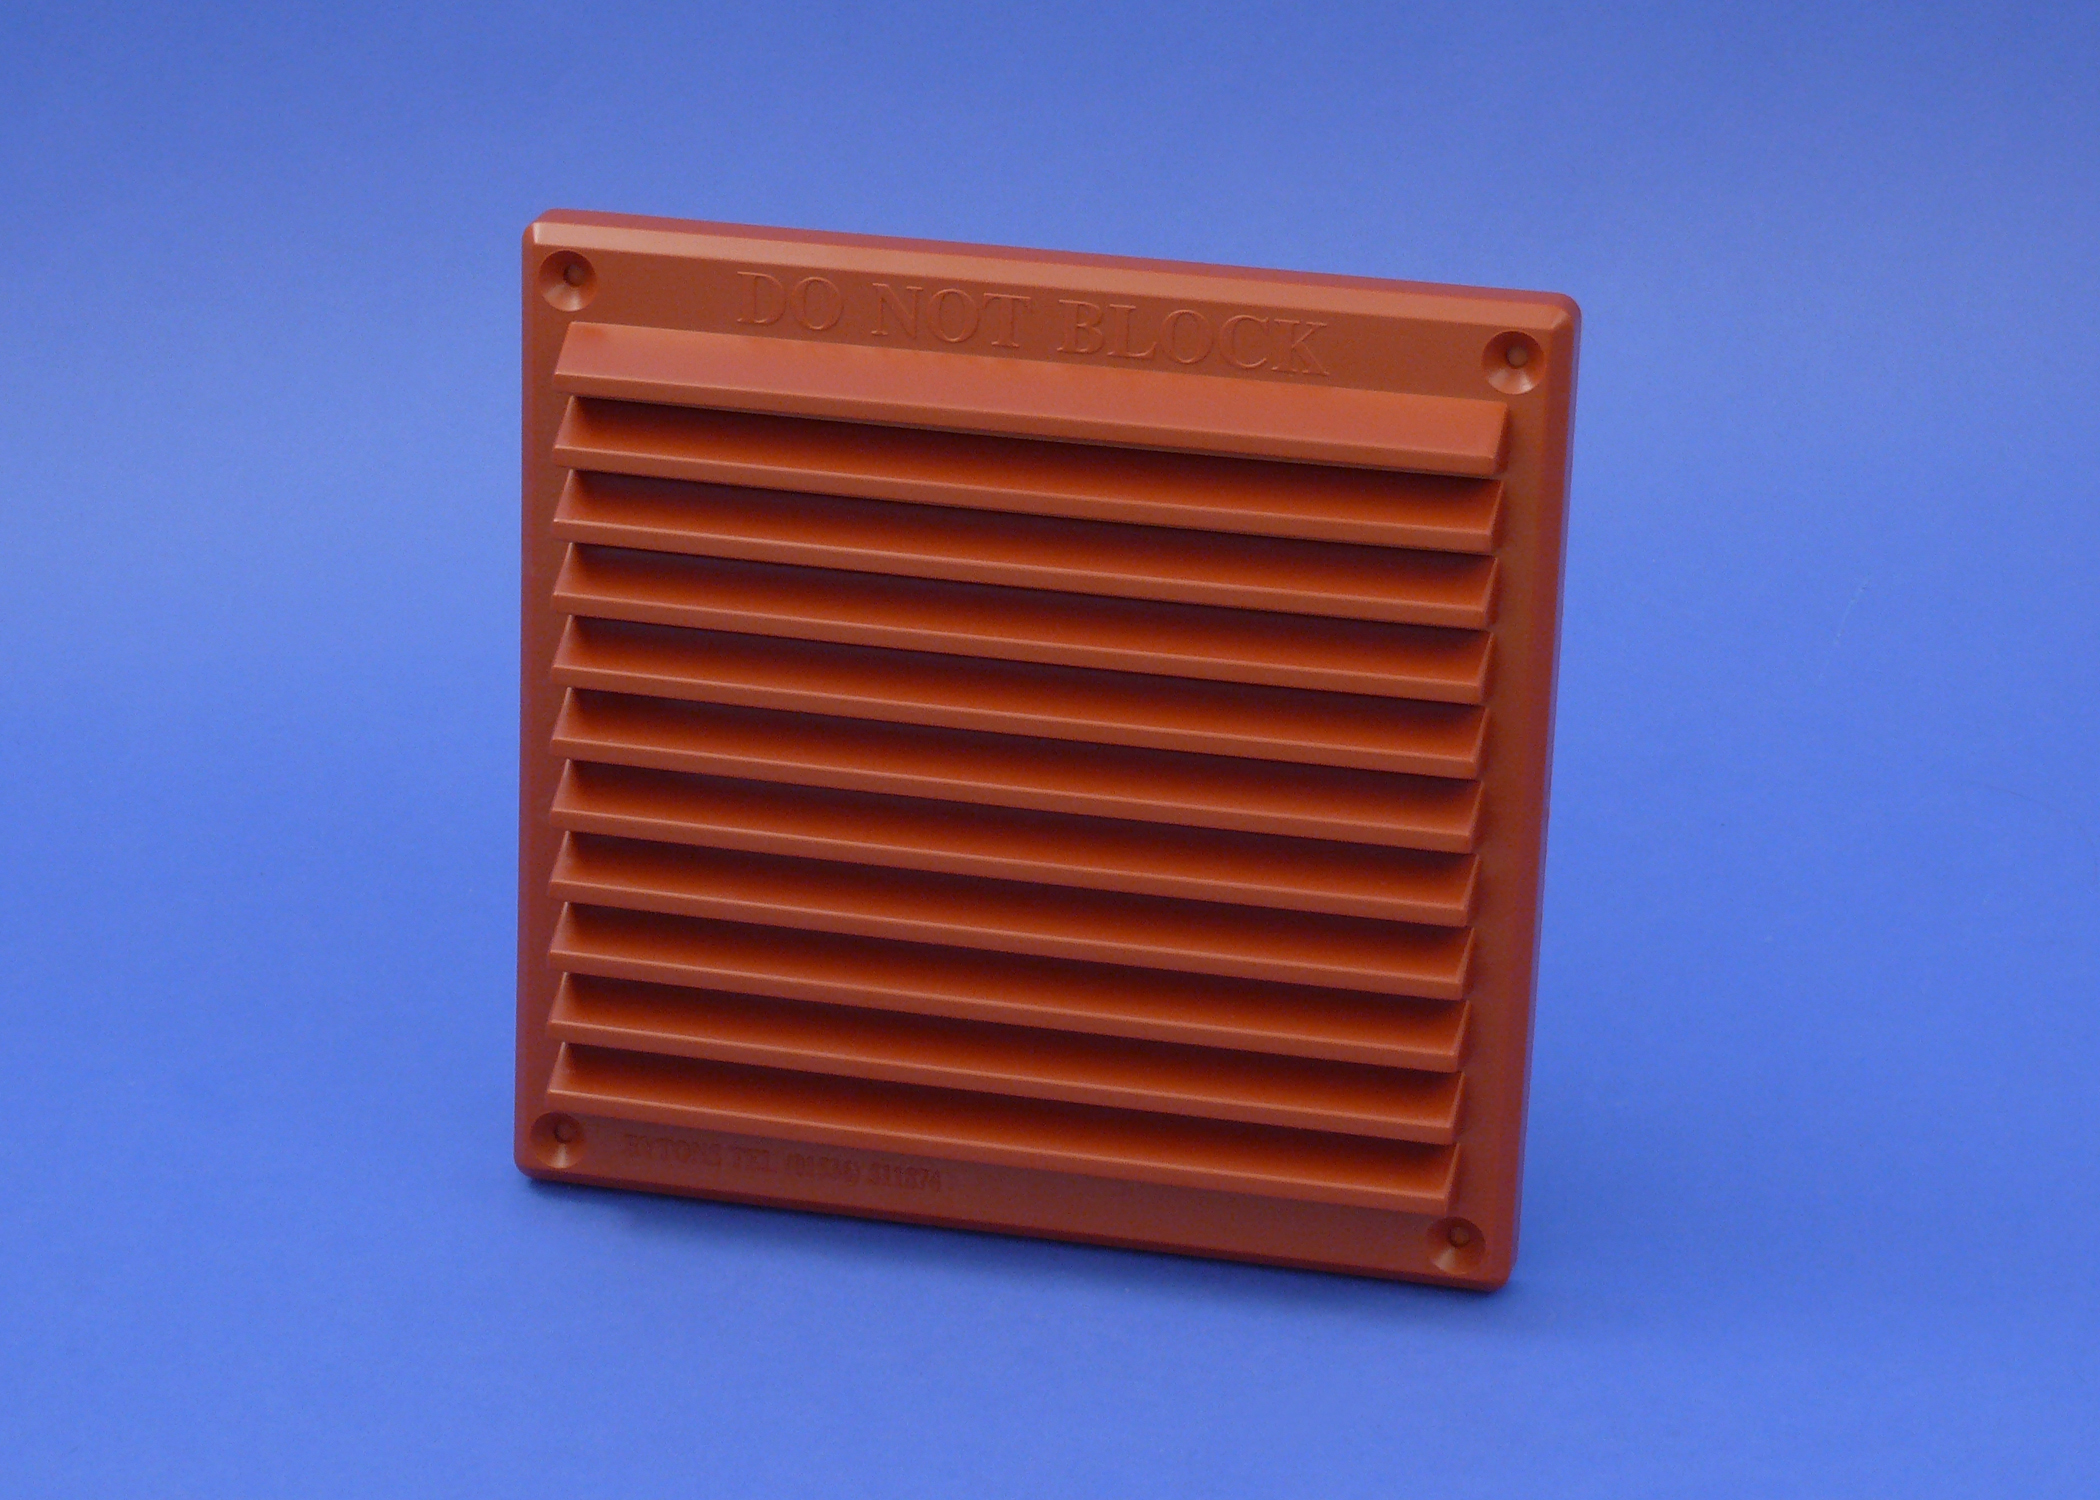 RYTONS 6X6 LOUVRE VENTILATION GRILLE - TERRACOTTA